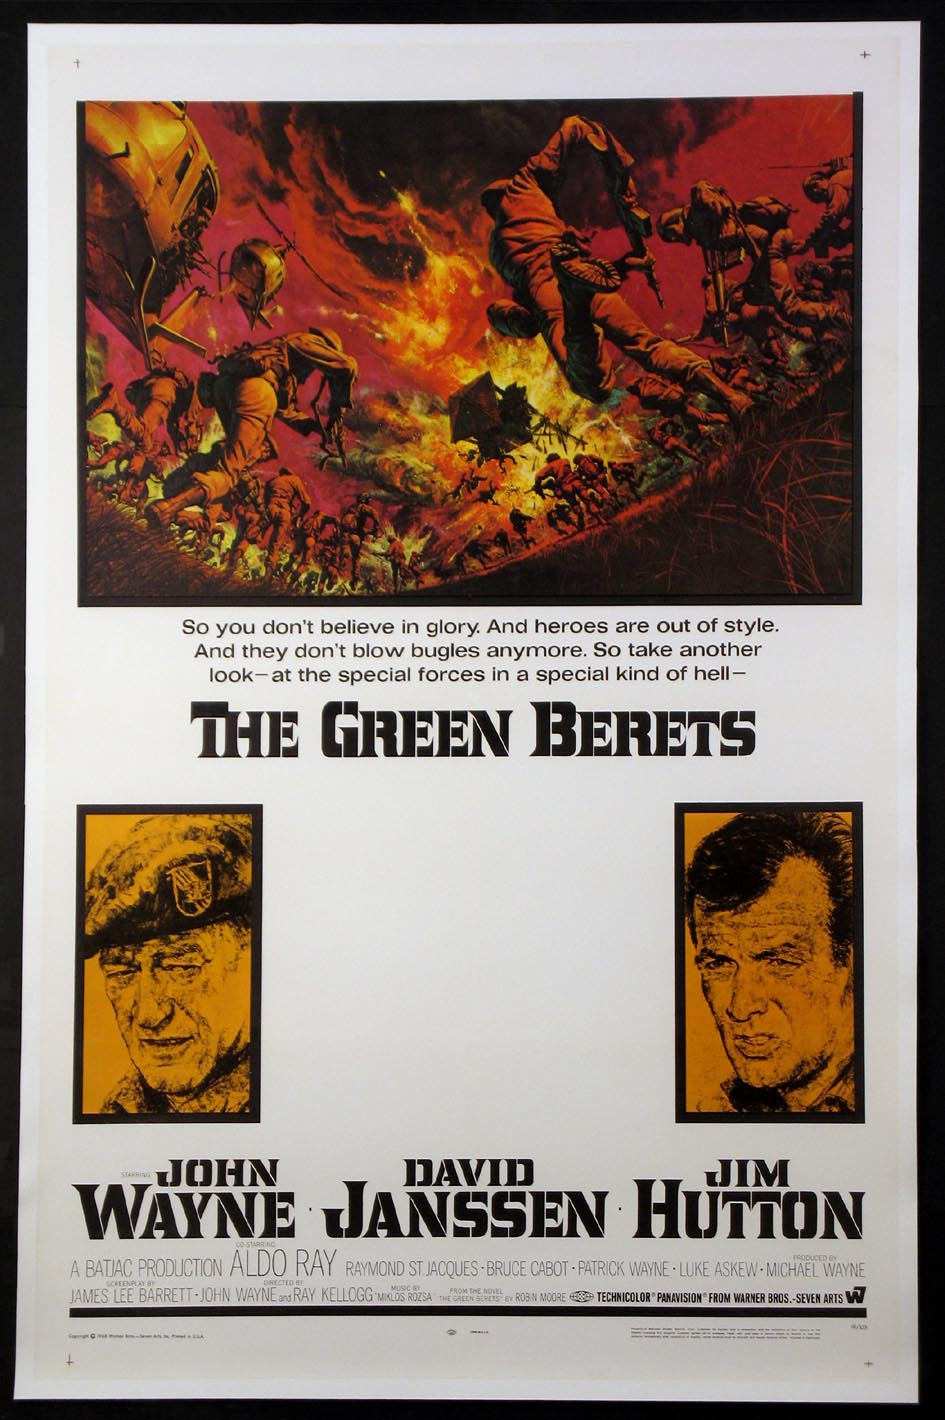 GREEN BERETS, THE @ FilmPosters.com